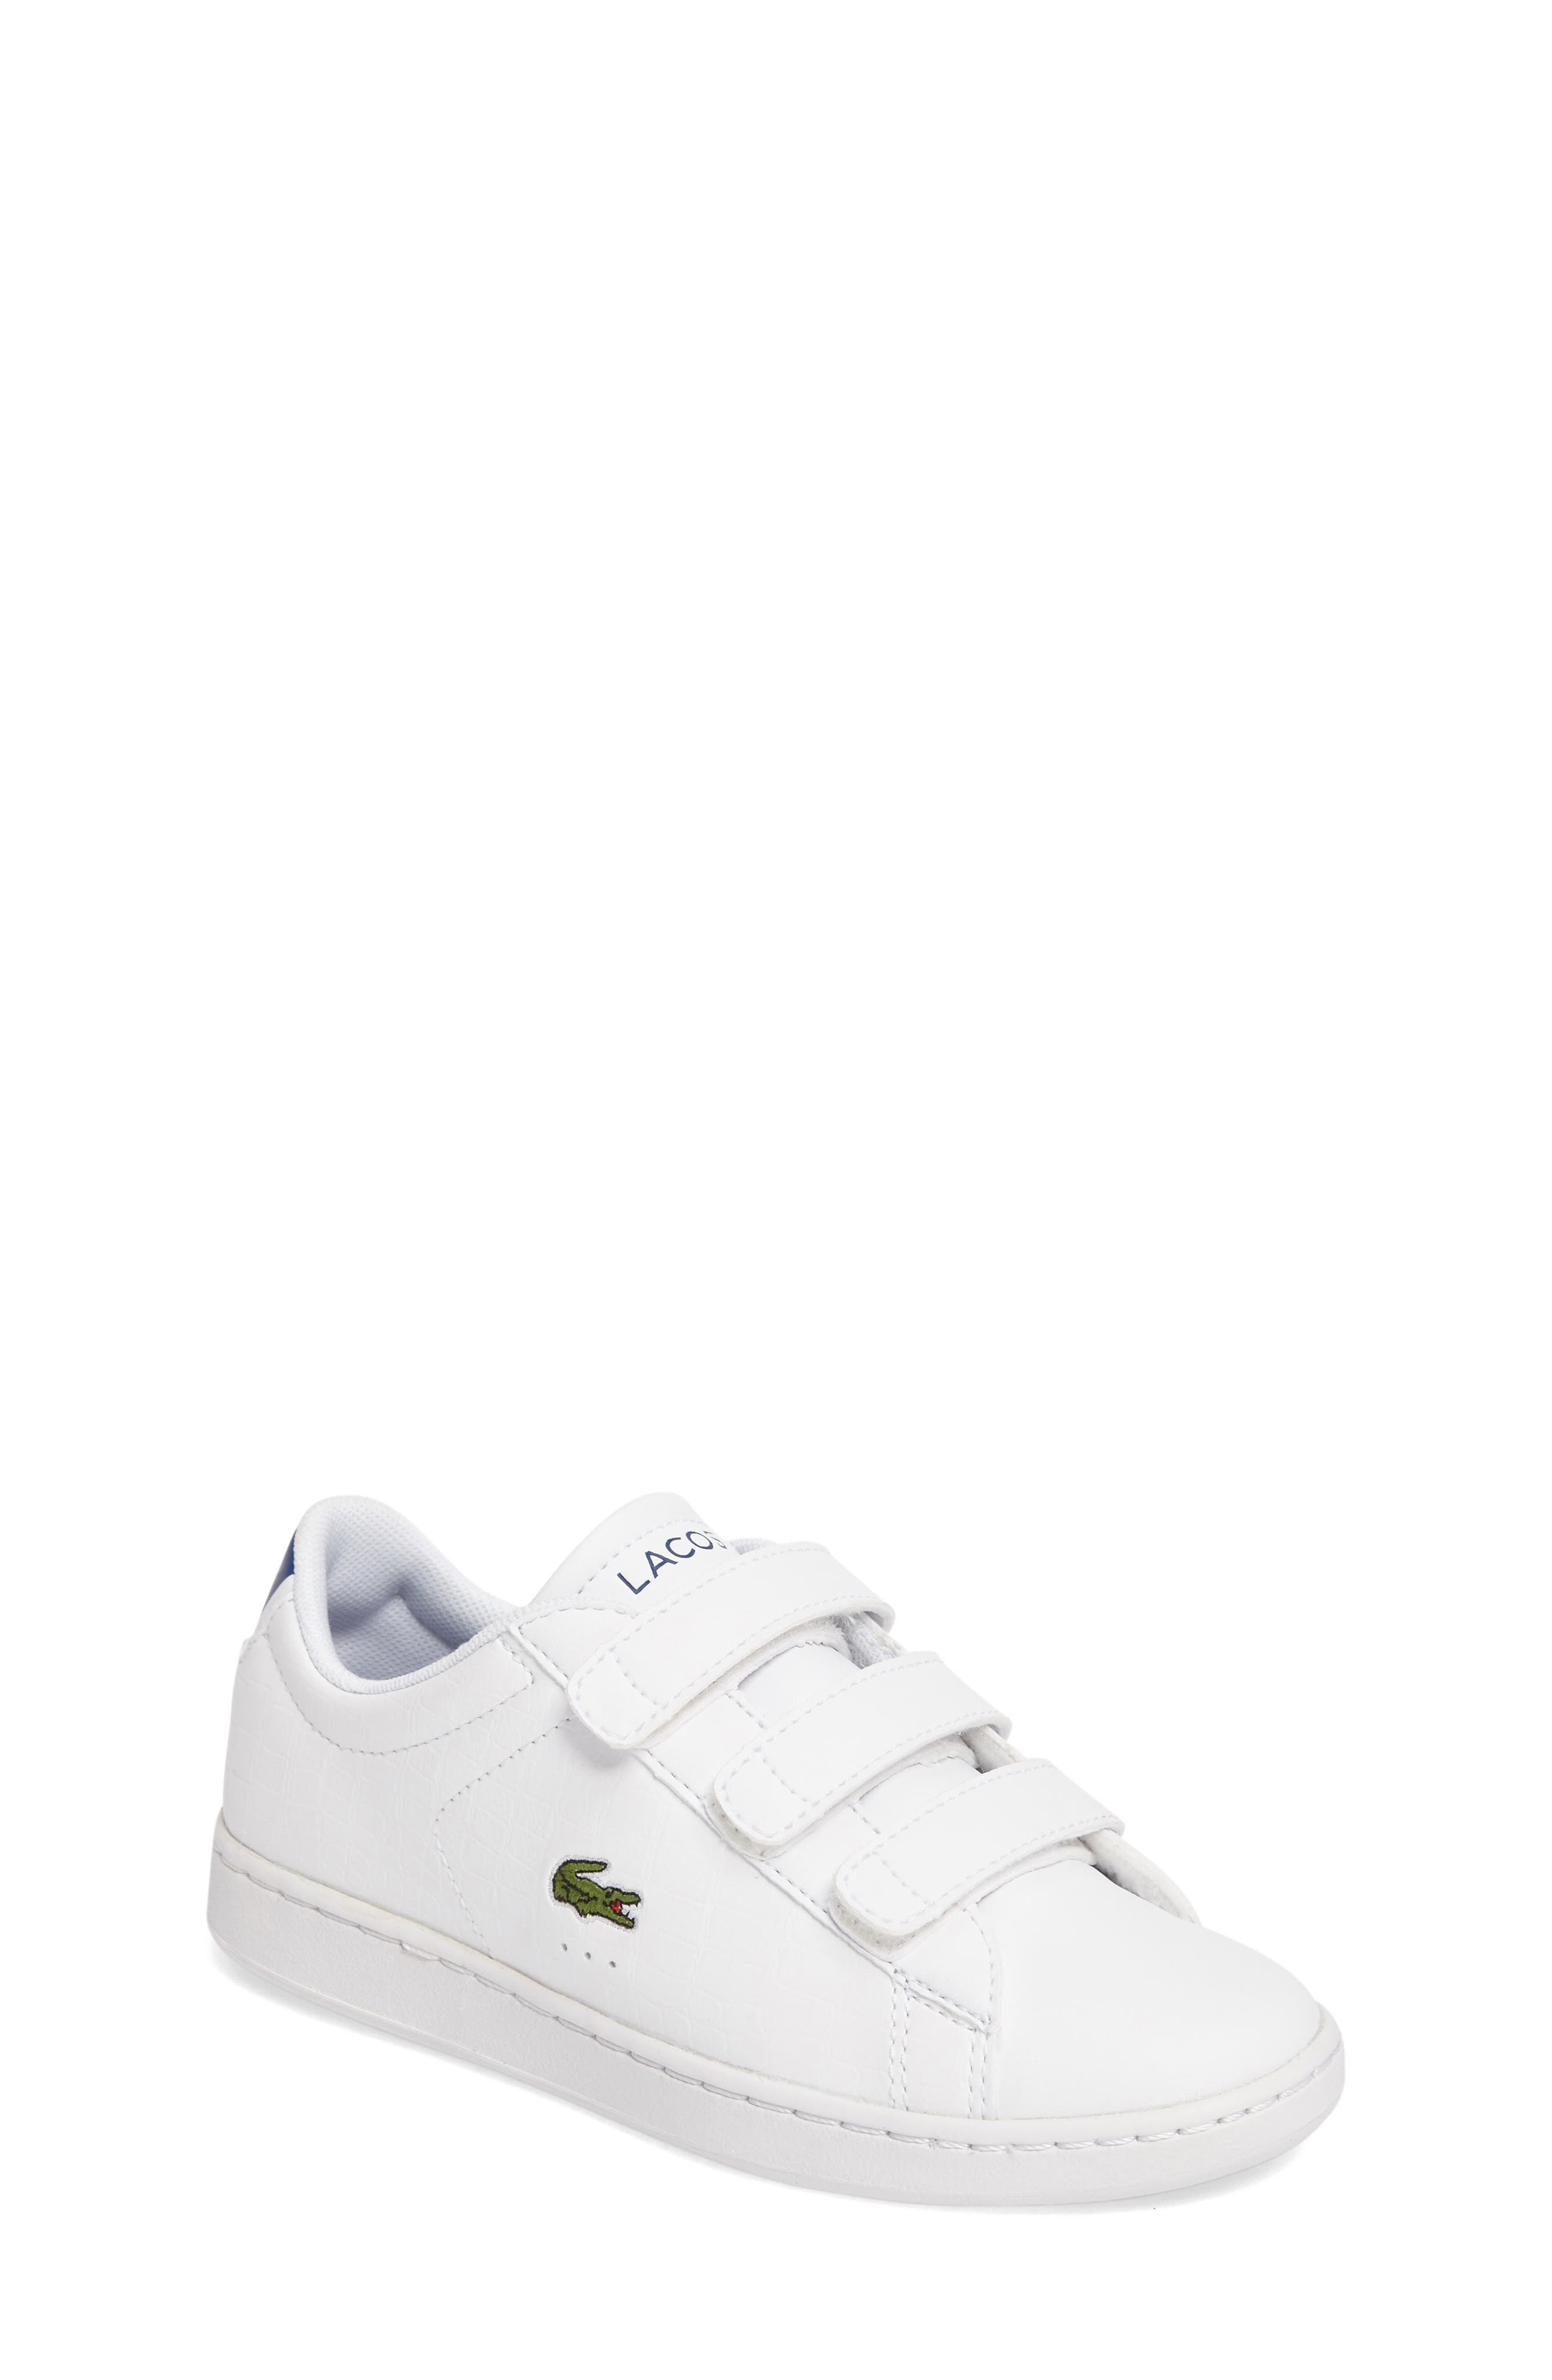 Carnaby EVO Sneaker,                             Main thumbnail 1, color,                             129